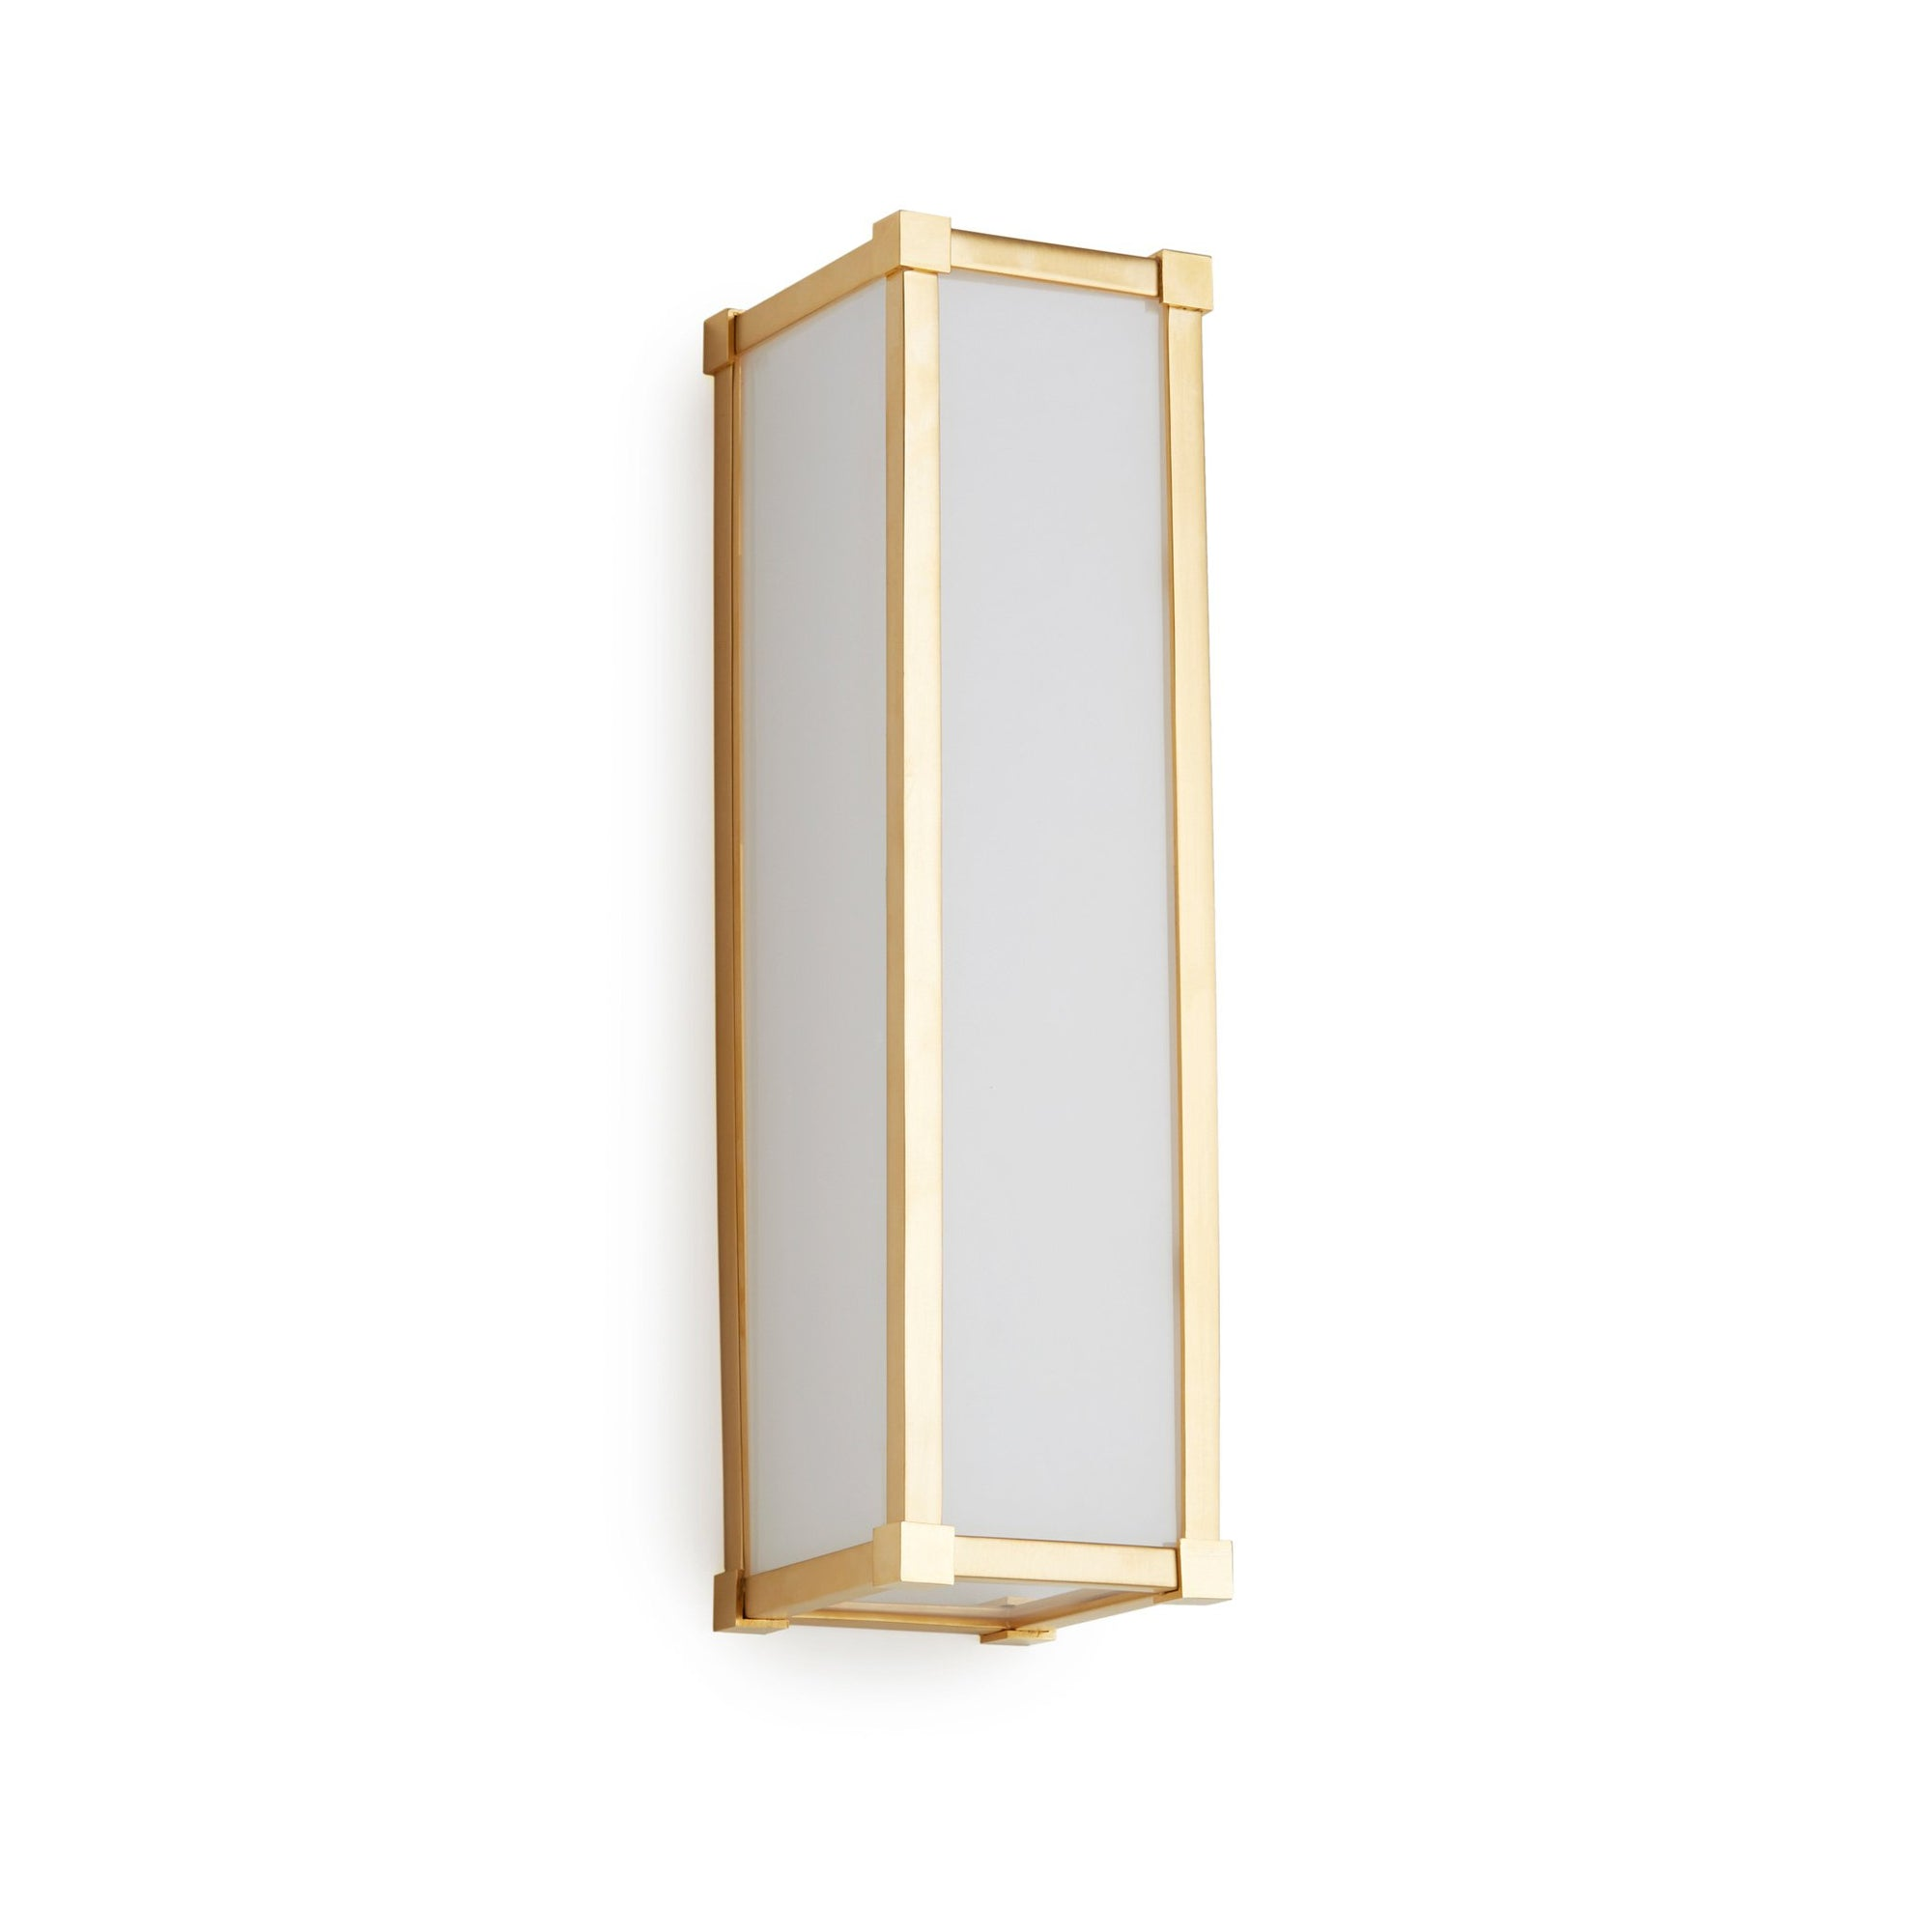 7114FG-16-VERT-GP Sherle Wagner International Square Knuckle Frosted Glass Panel Light in Gold Plate metal finish